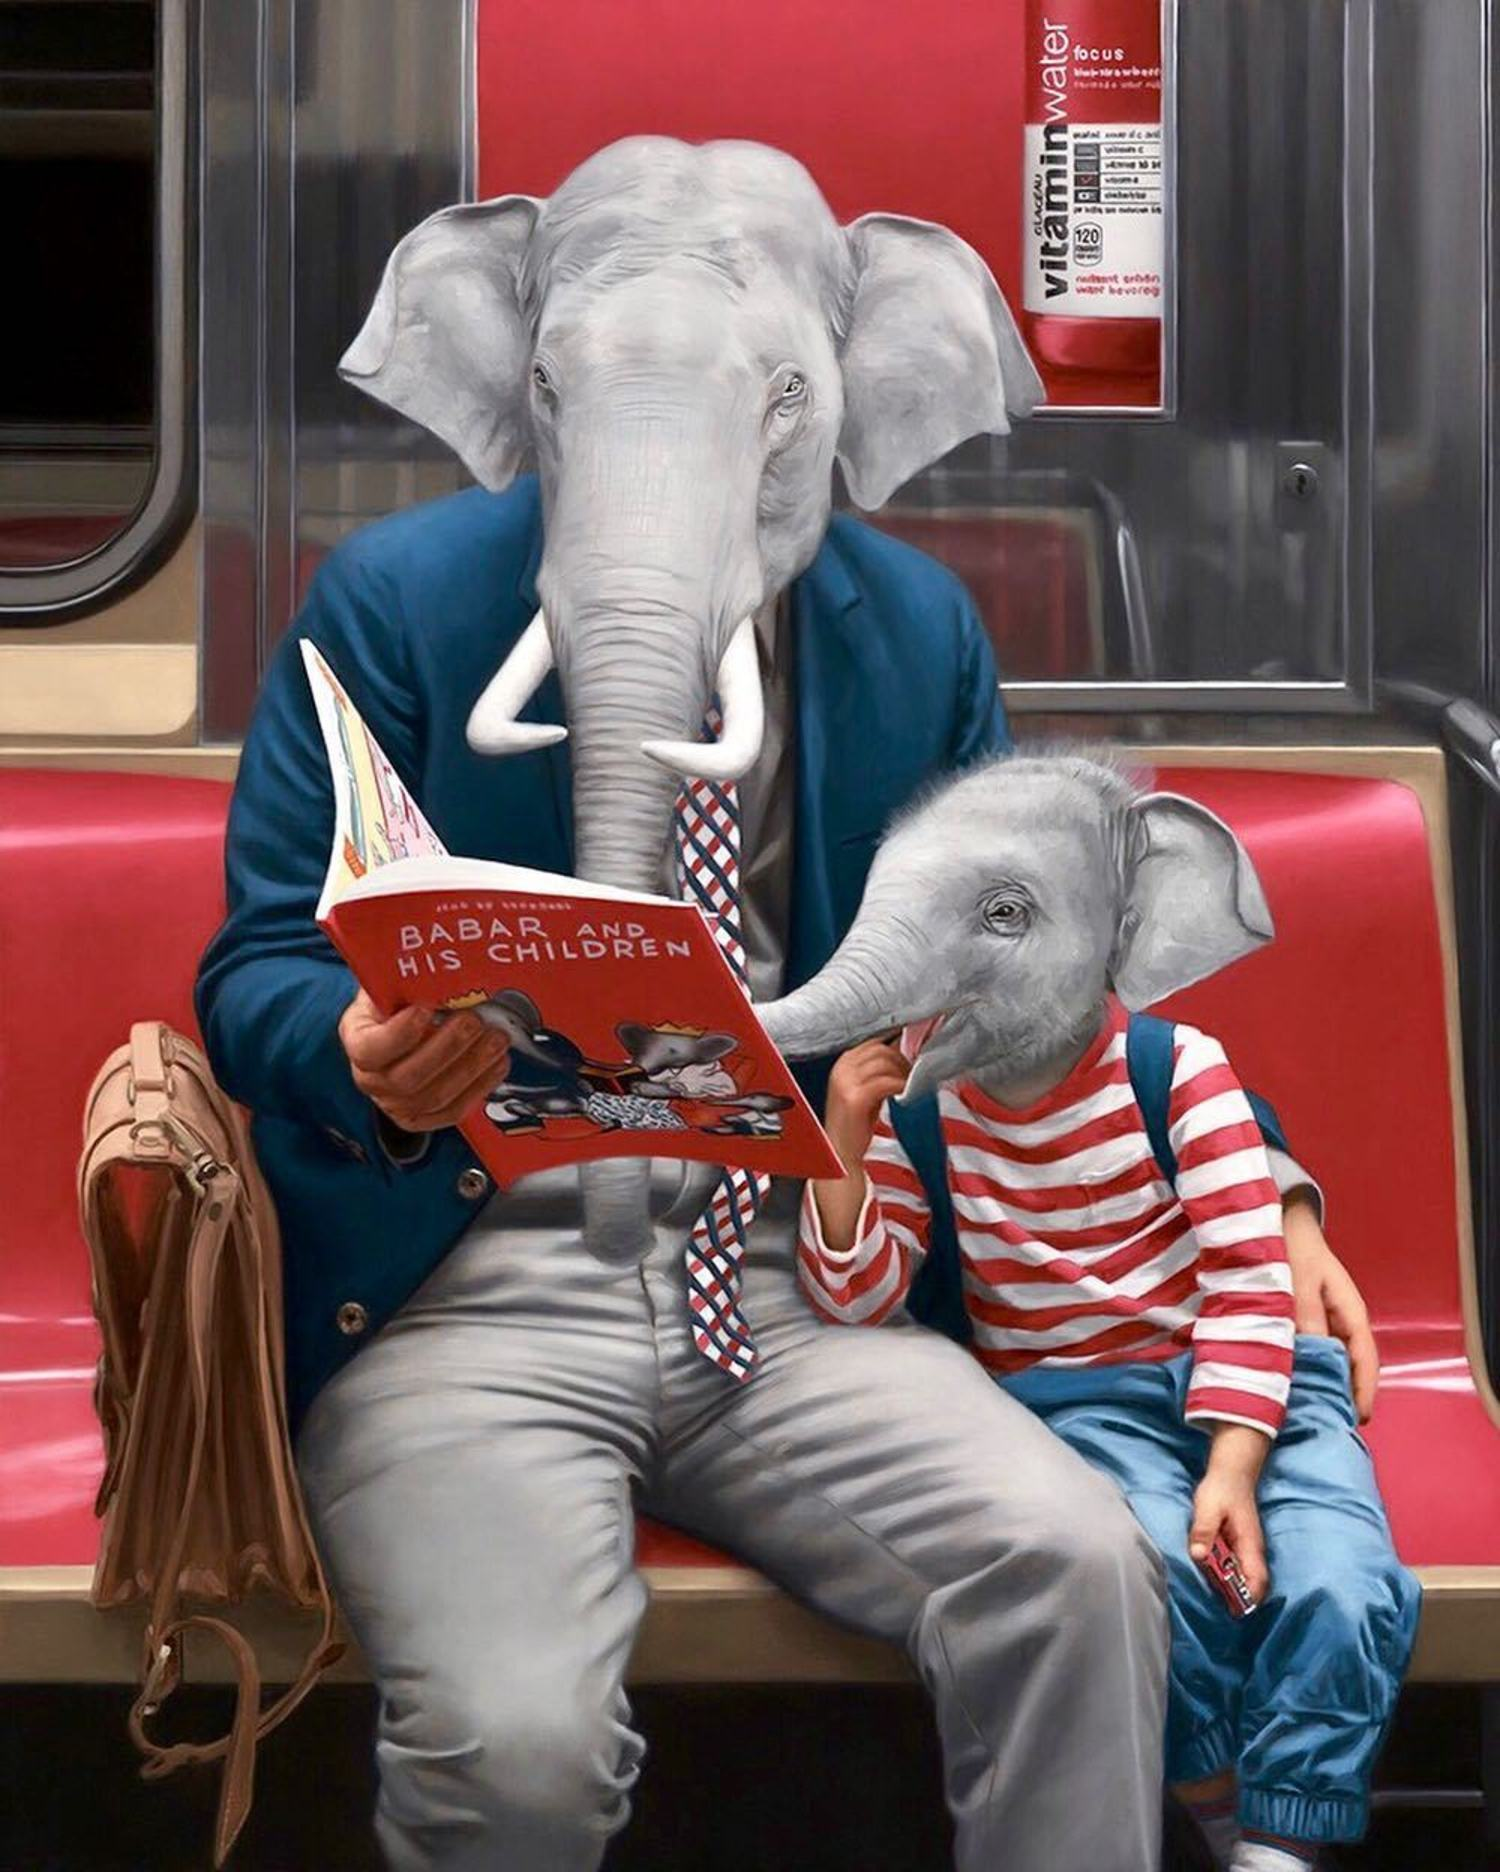 This is the second of two father and son pieces I painted for my last solo show. I loved the Babar books when I was a kid and painting this really brought me back to my childhood when my parents read to me all the time. I'm finishing up several new father/son paintings for my show coming up in New York at @spoke_art. 'LAX / JFK' is being curated by the folks at @thinkspace_art and opens on November 11th from 6-10 PM. Save the date! 🐘📕 Prints of this painting available at grabelsky.etsy.com